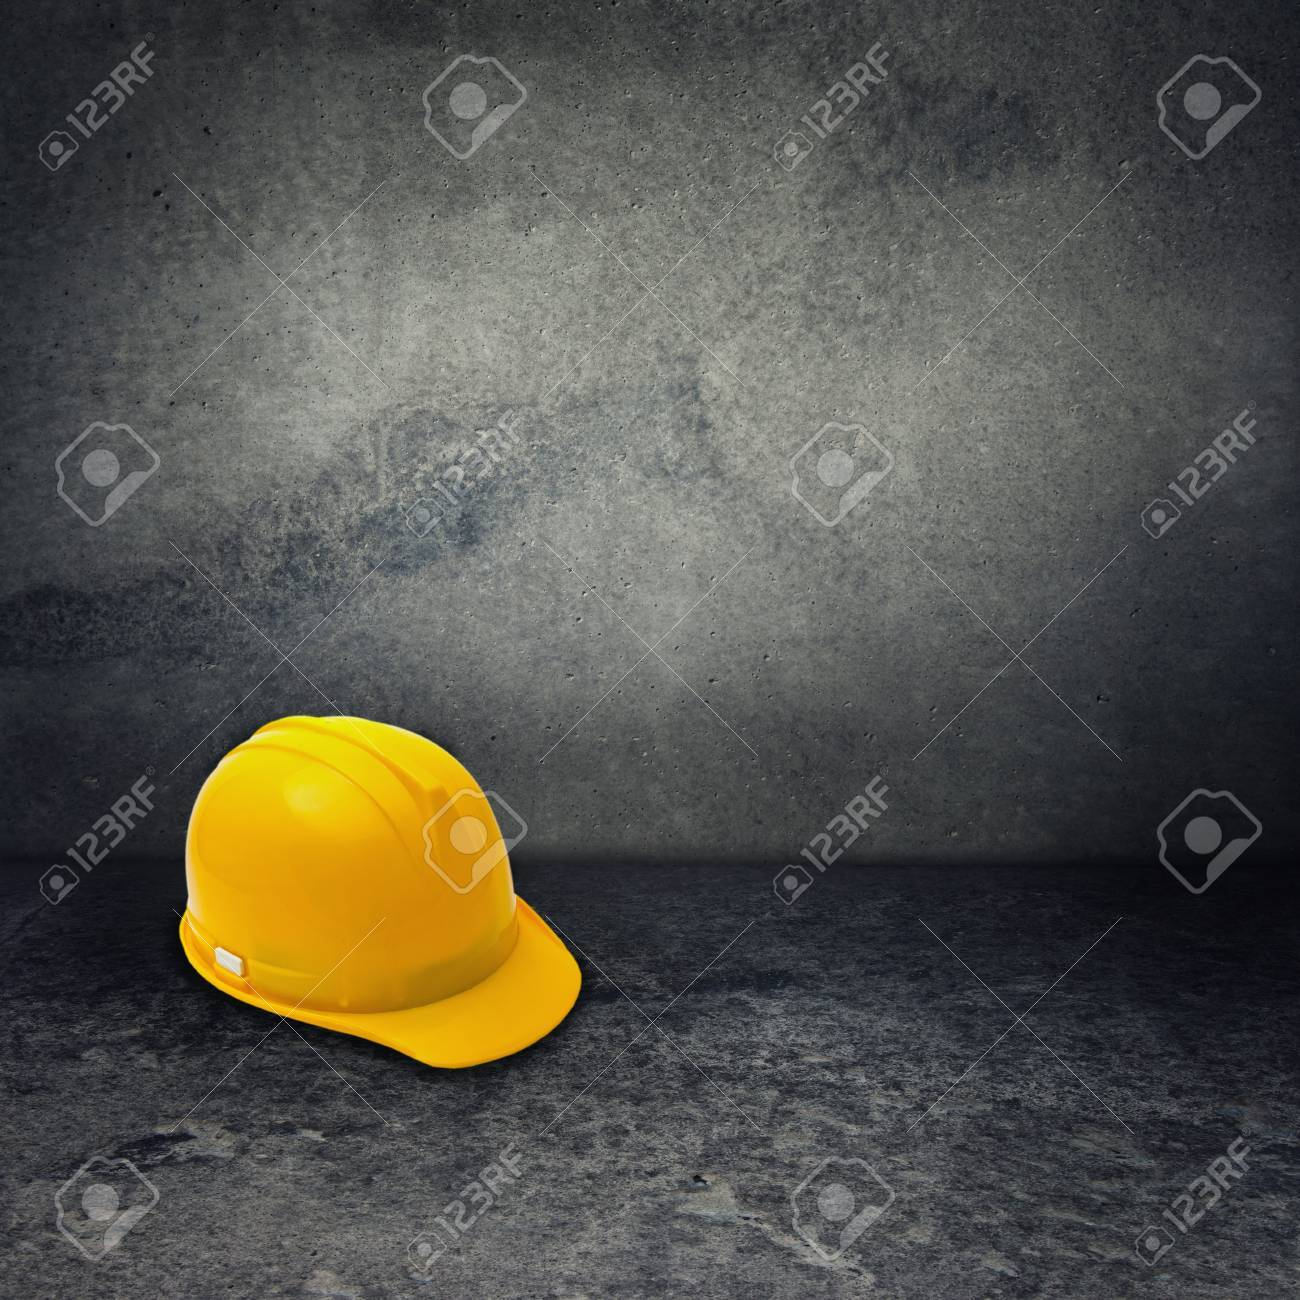 Protective equipment in obsolete gray grunge concrete room Stock Photo - 14534001